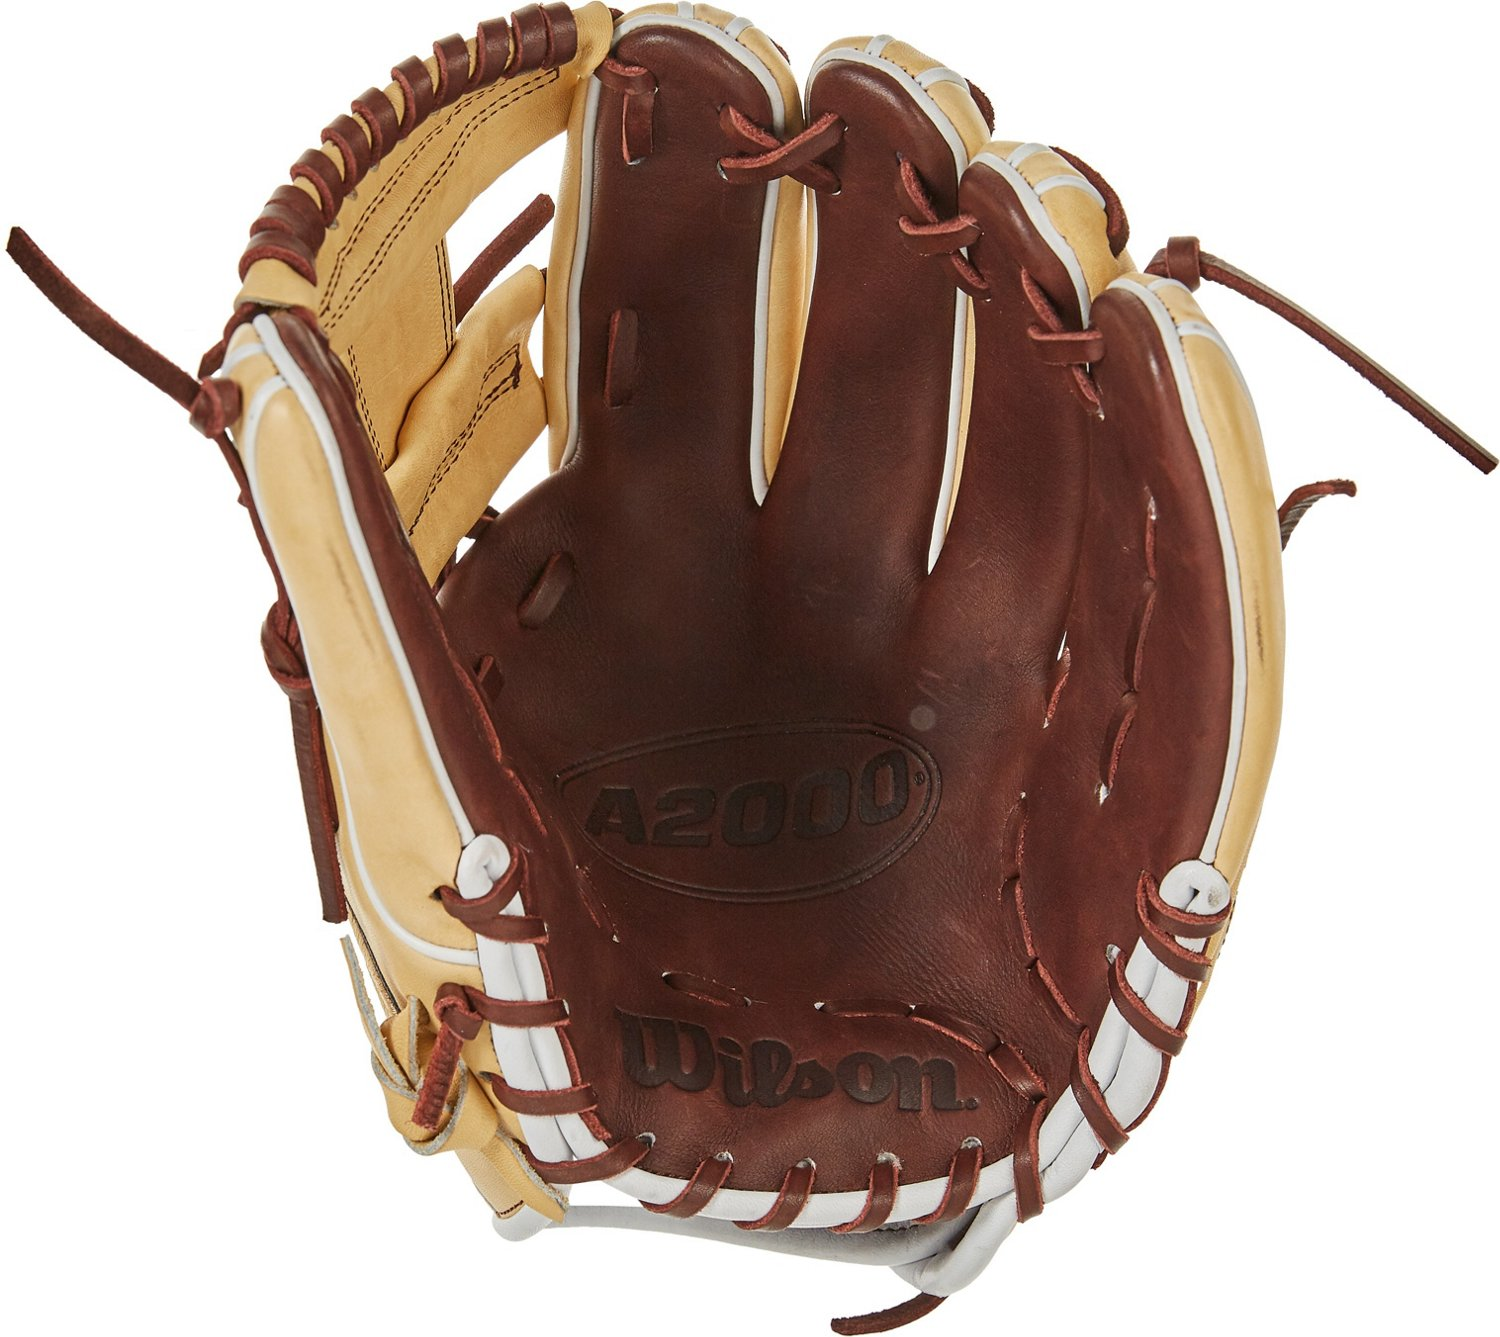 Wilson A2000 1786 11 5 in Baseball Infield Glove